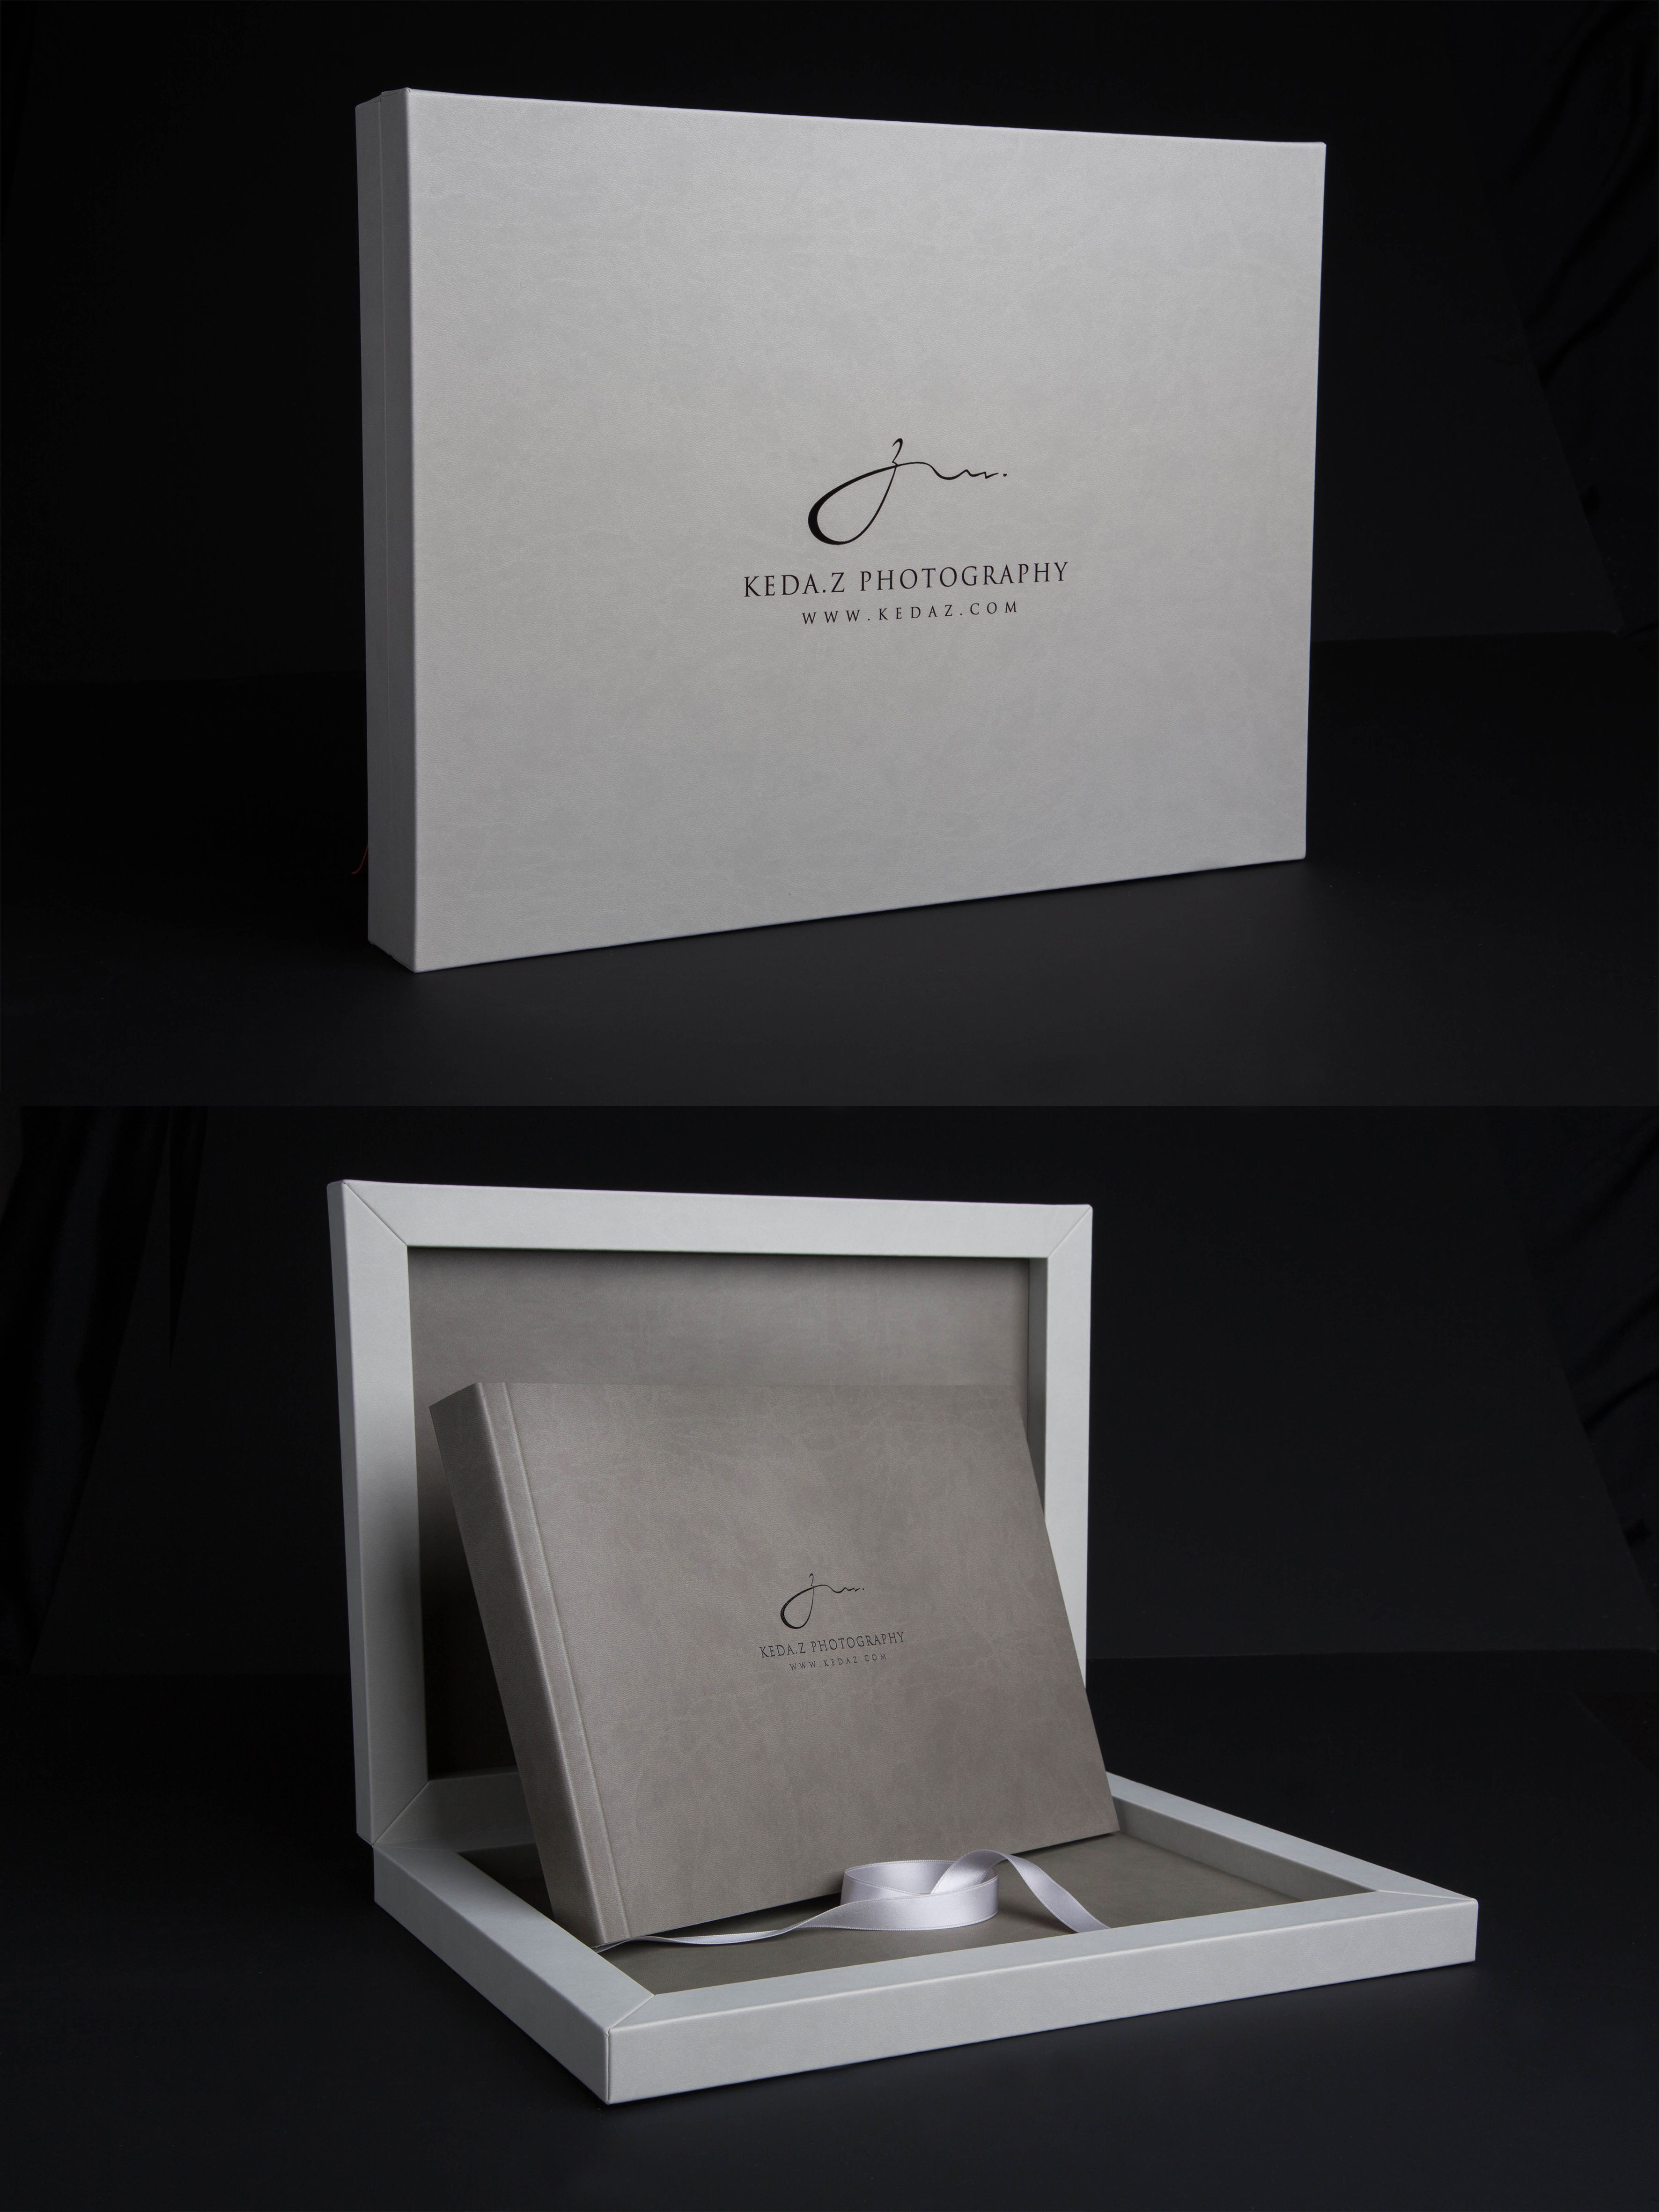 #Youngbook, box in #silver brilliant linen #material and #cover in #smokegray cloud leatherette created for #kedazphotography . #graphistudio #weddingbook #design #inspiration.